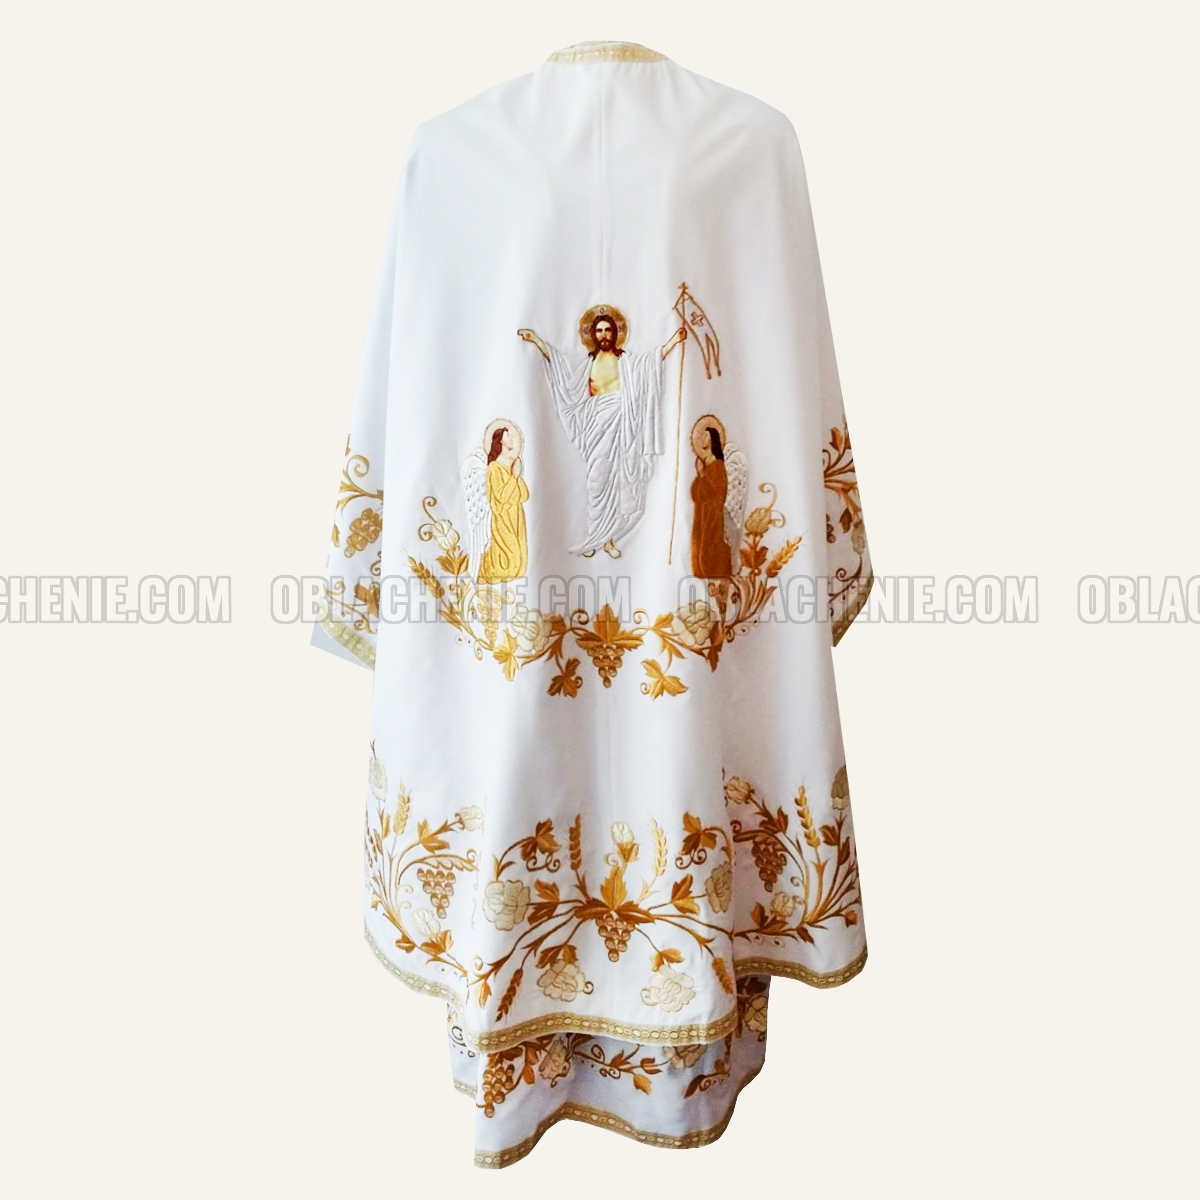 Embroidered priest's vestments 10243